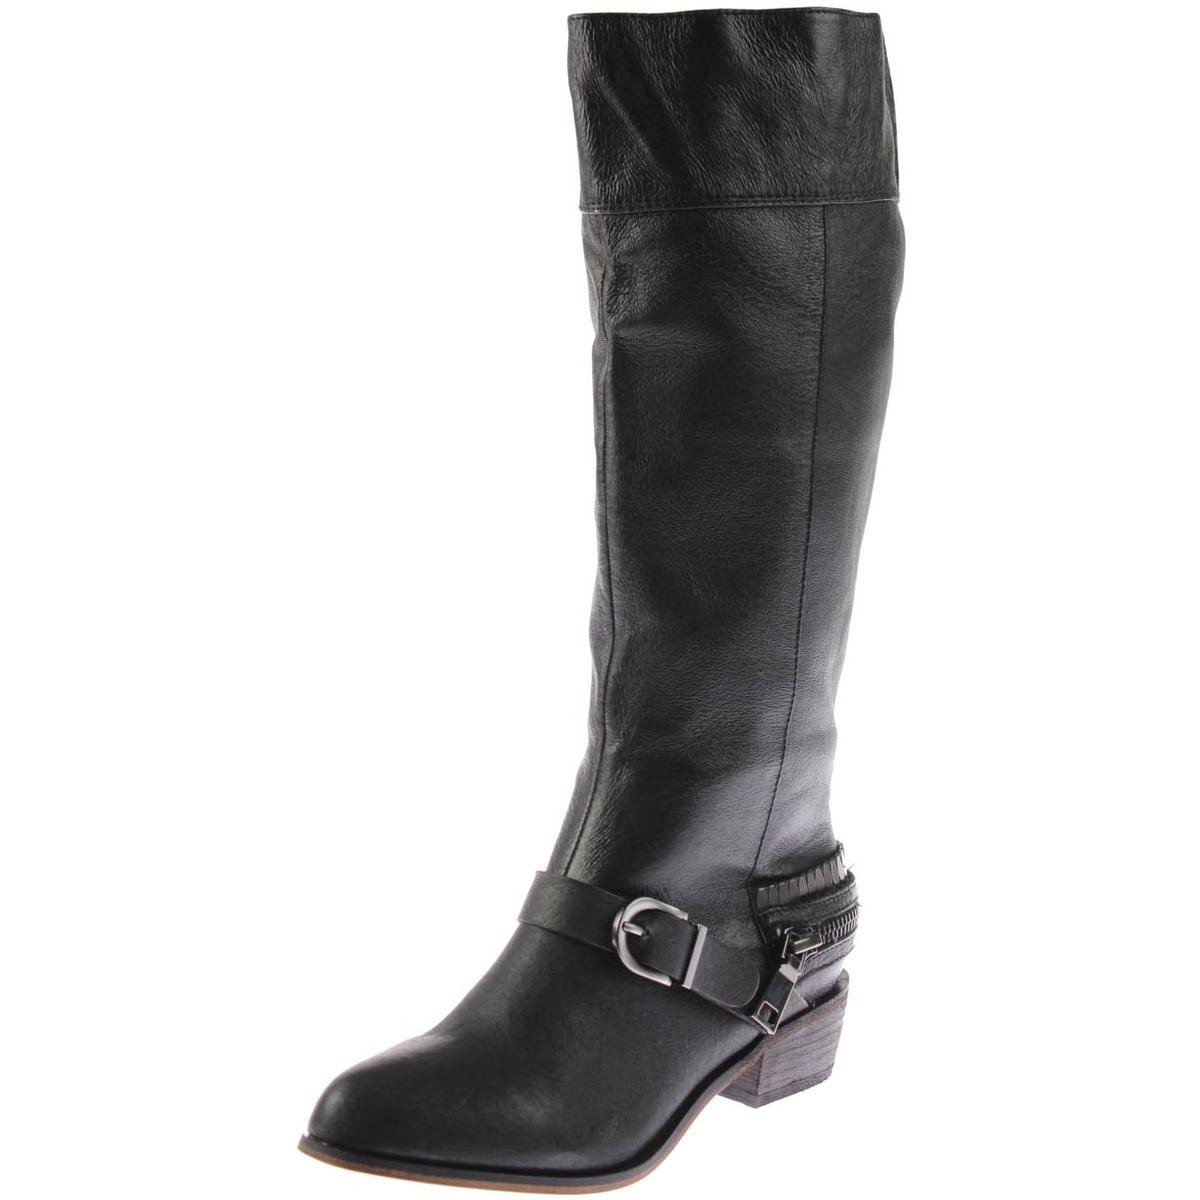 laundry 0872 womens solar belted knee high